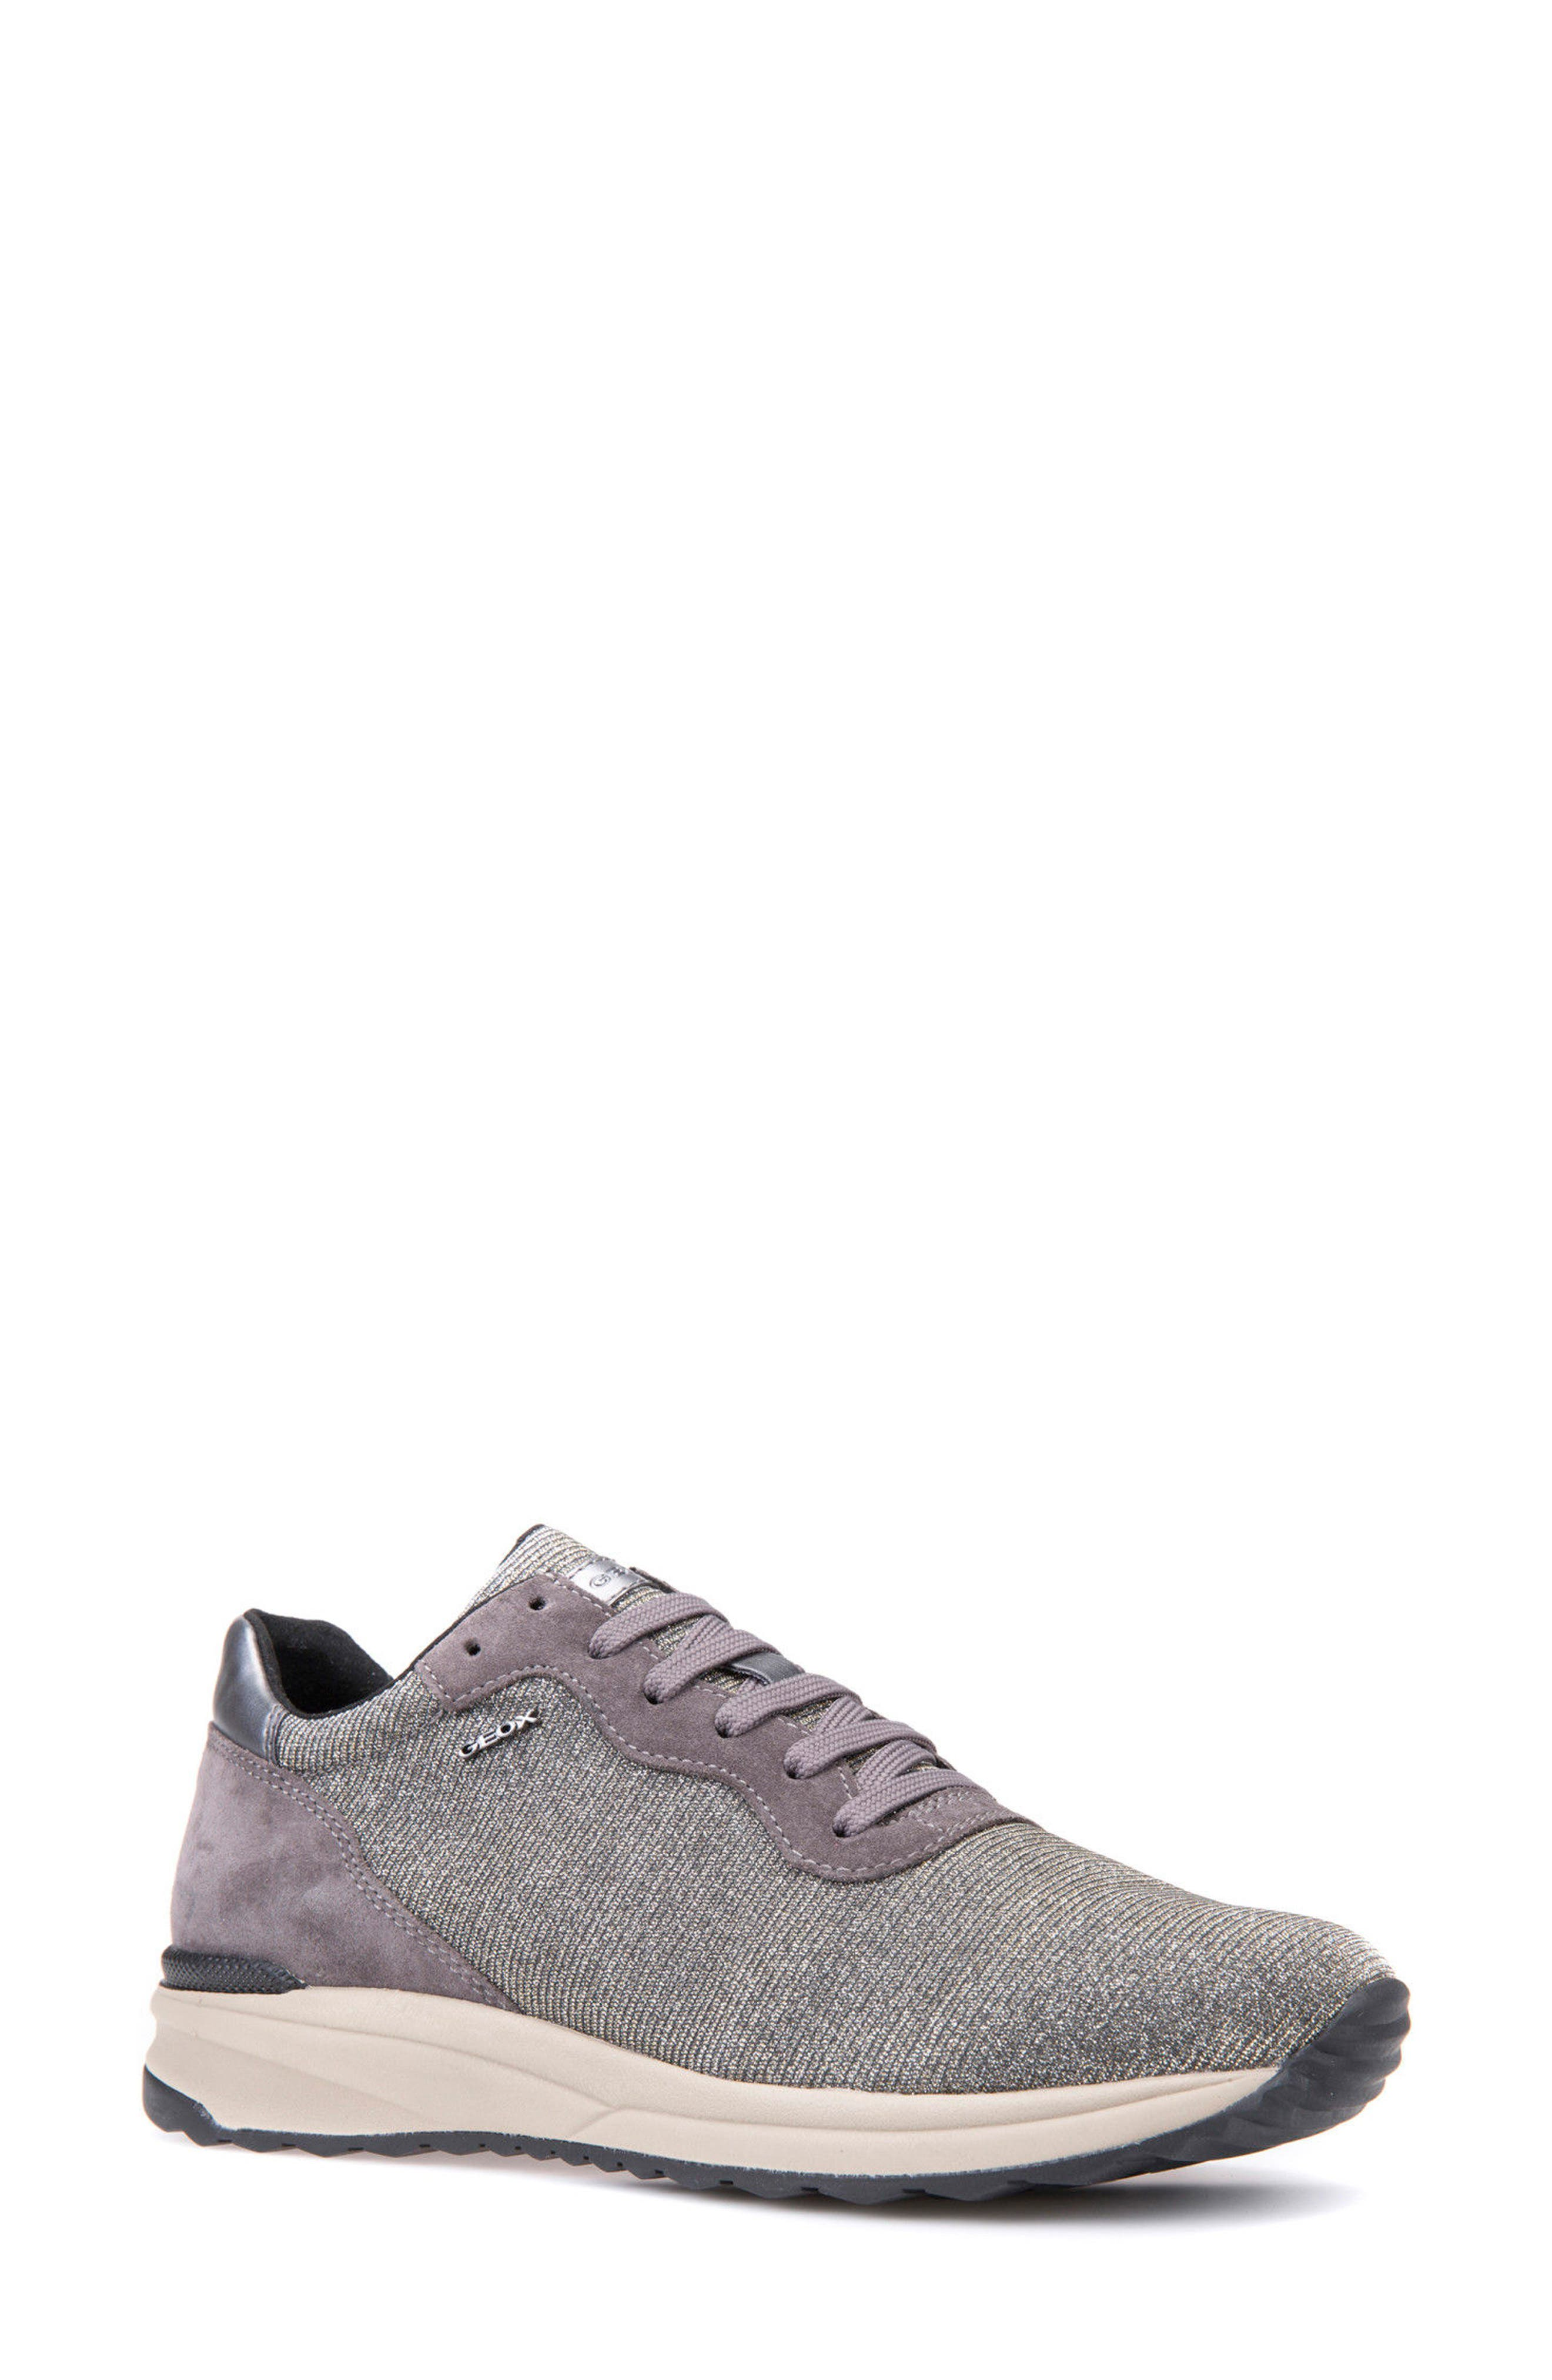 Main Image - Geox Airell Sneaker (Women)